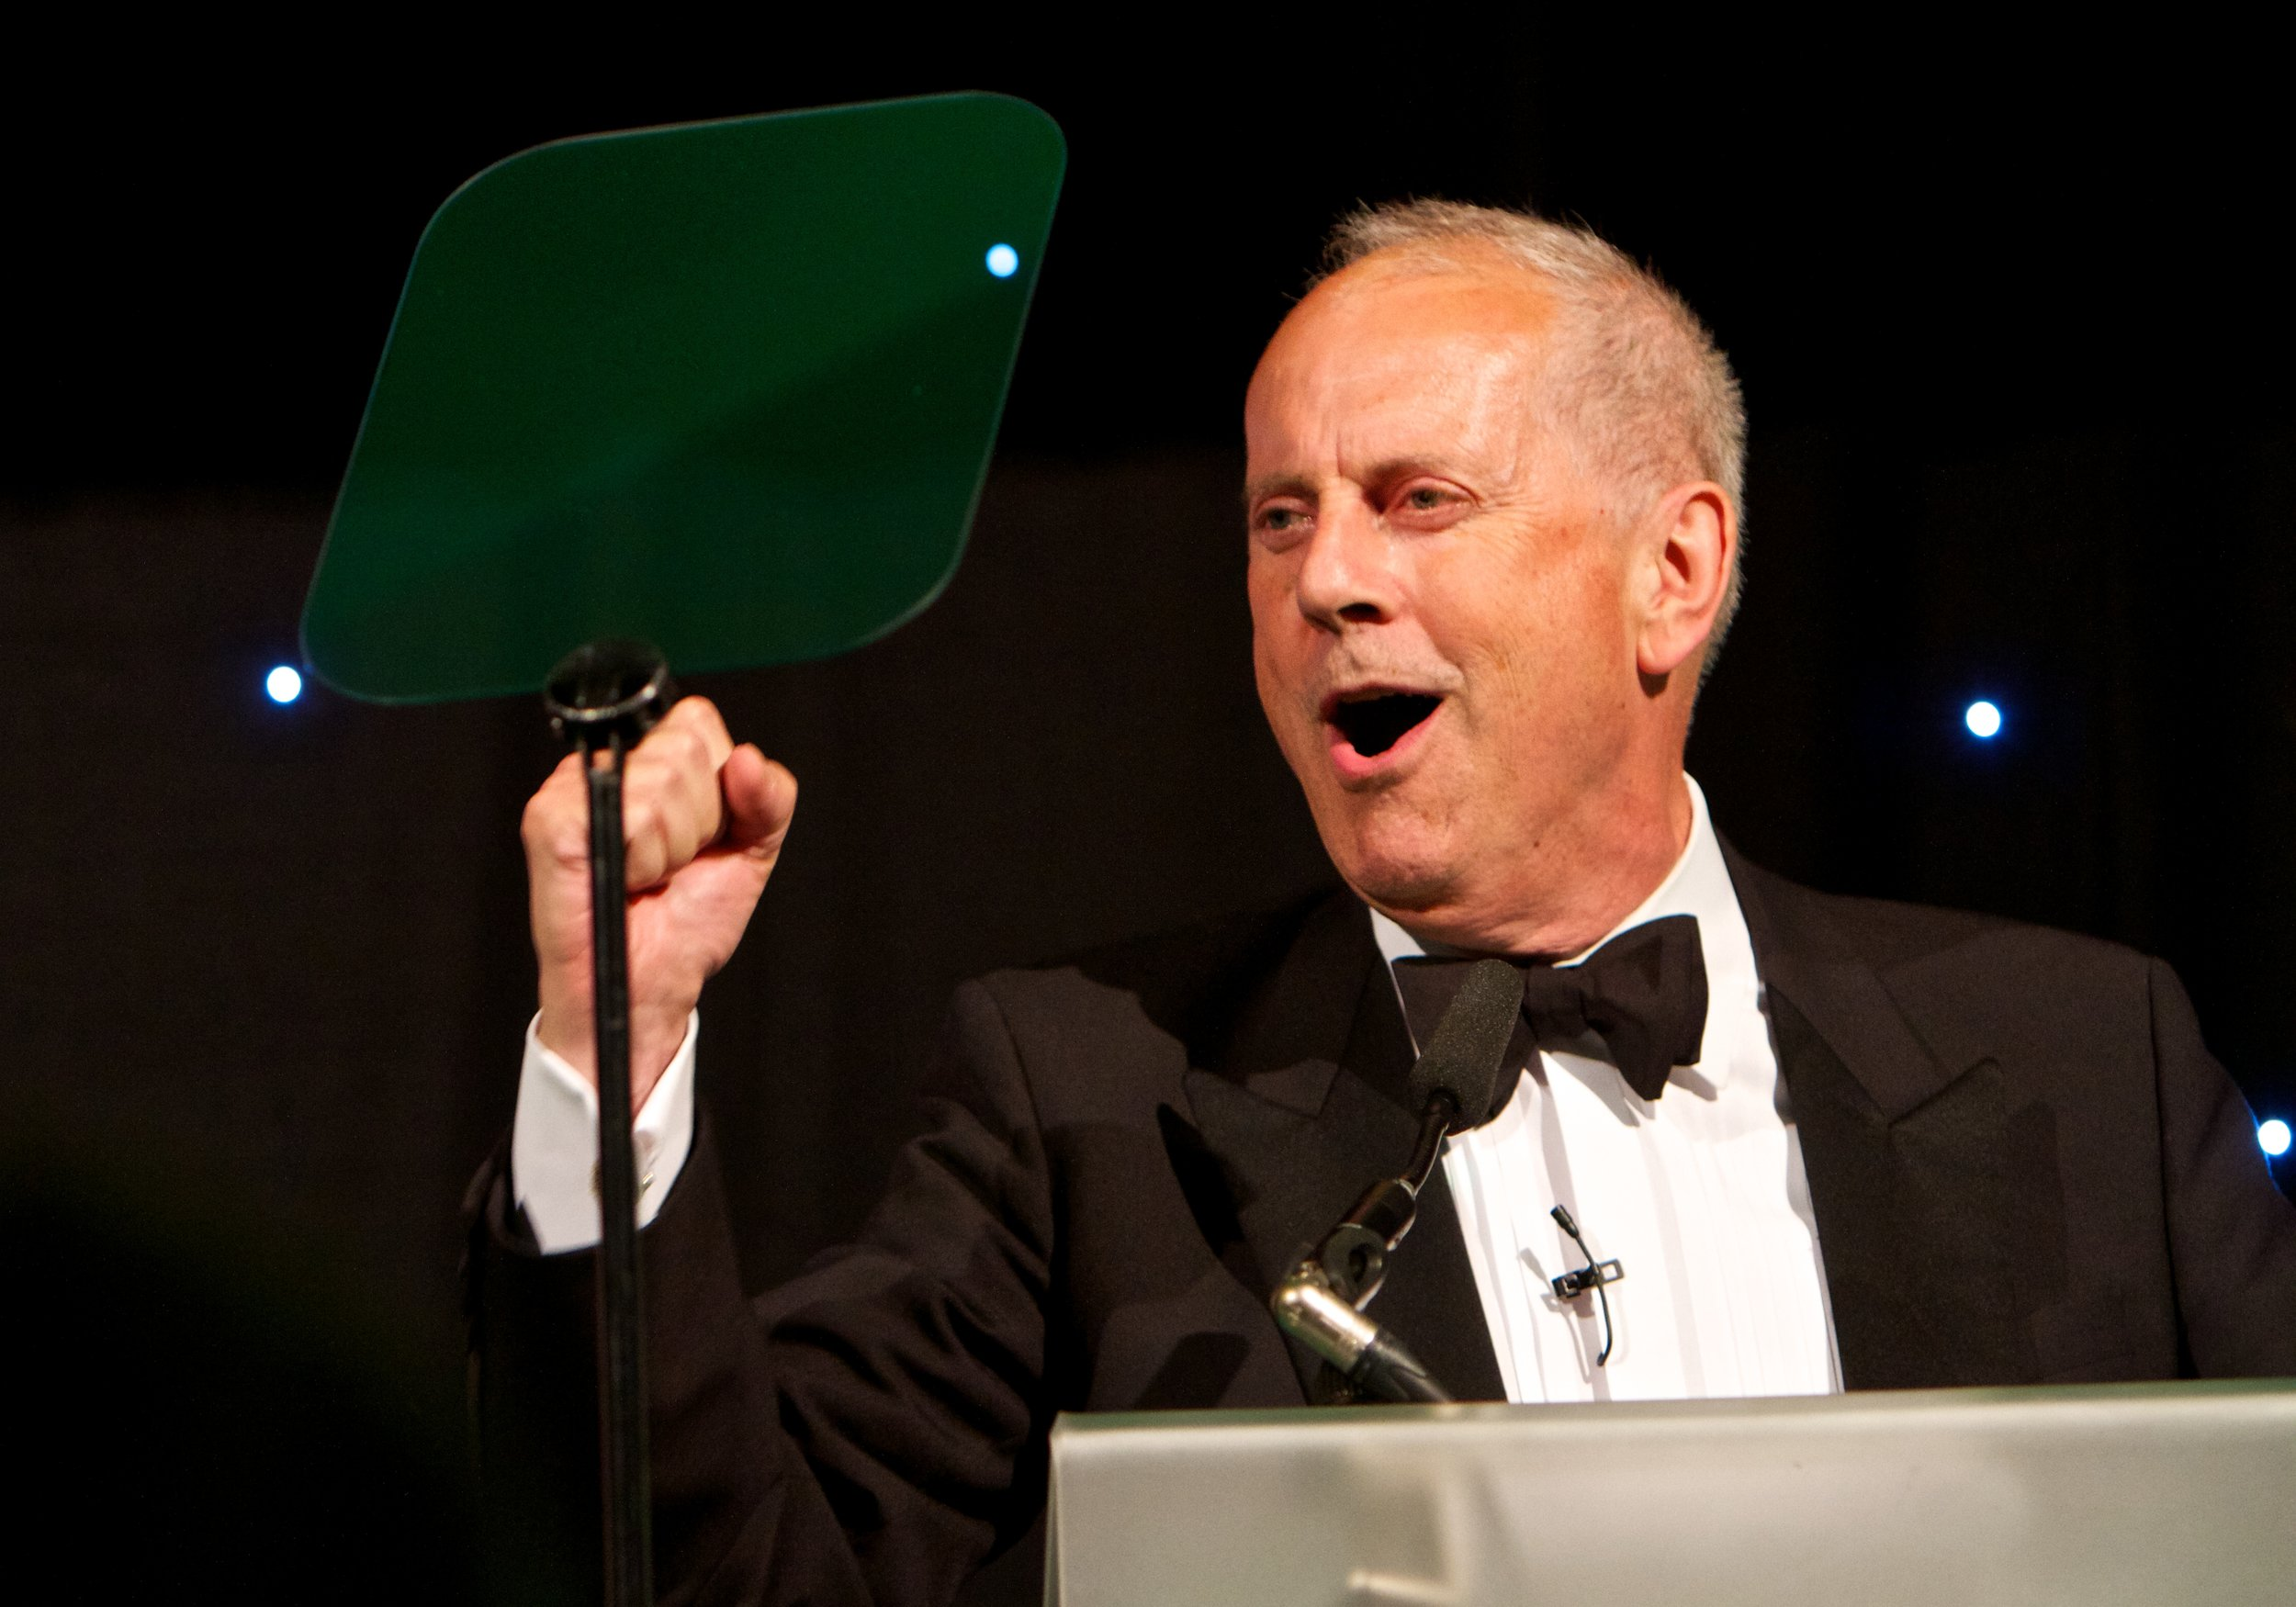 SPEAKER & AWARDS HOST - Gyles Brandreth is a writer, broadcaster, former MP and Government Whip - and one of Britain's most sought-after award ceremony hosts, key-note and after-dinner speakers.